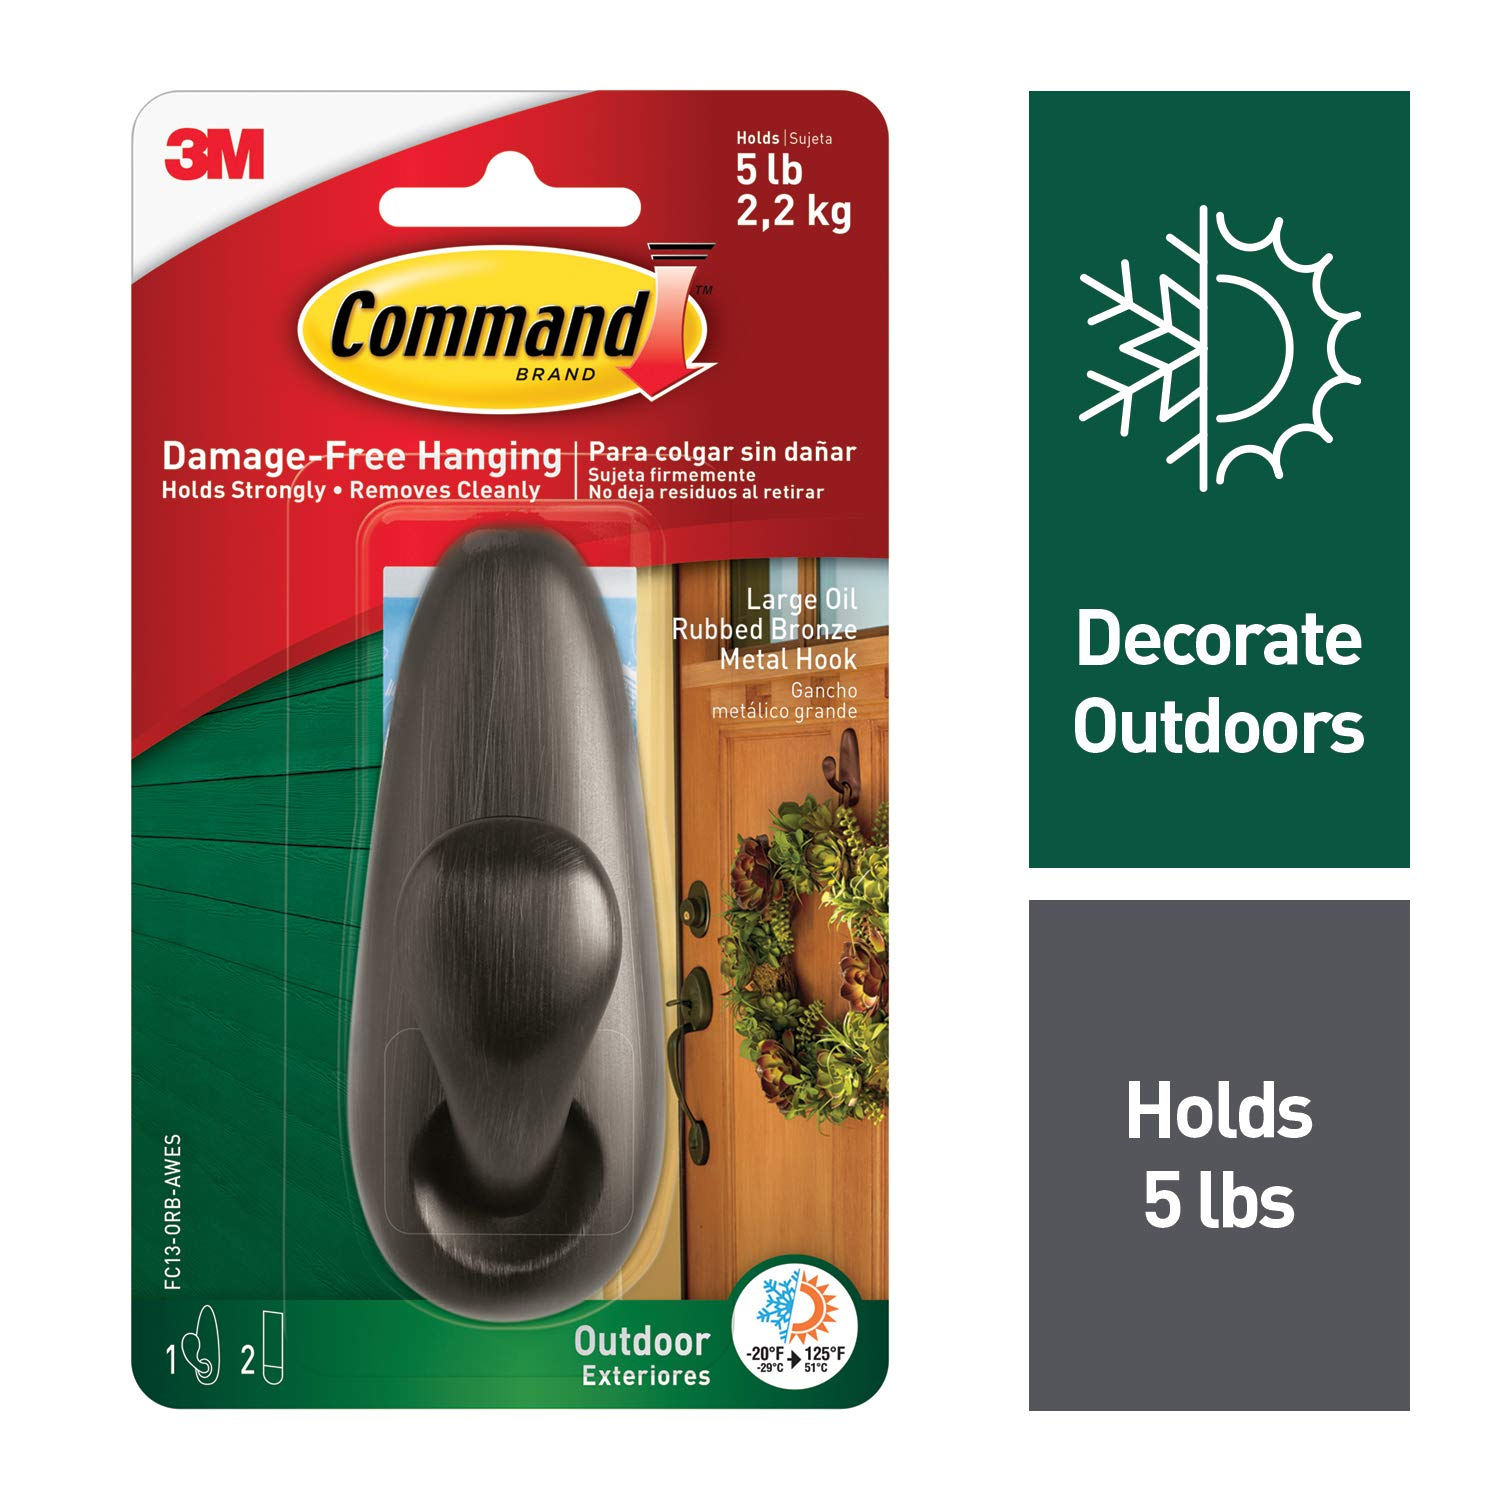 Command Outdoor Forever Classic Metal Hook Large Oil Rubbed Bronze 1 Hook with Foam Strips FC13 ORB AWES